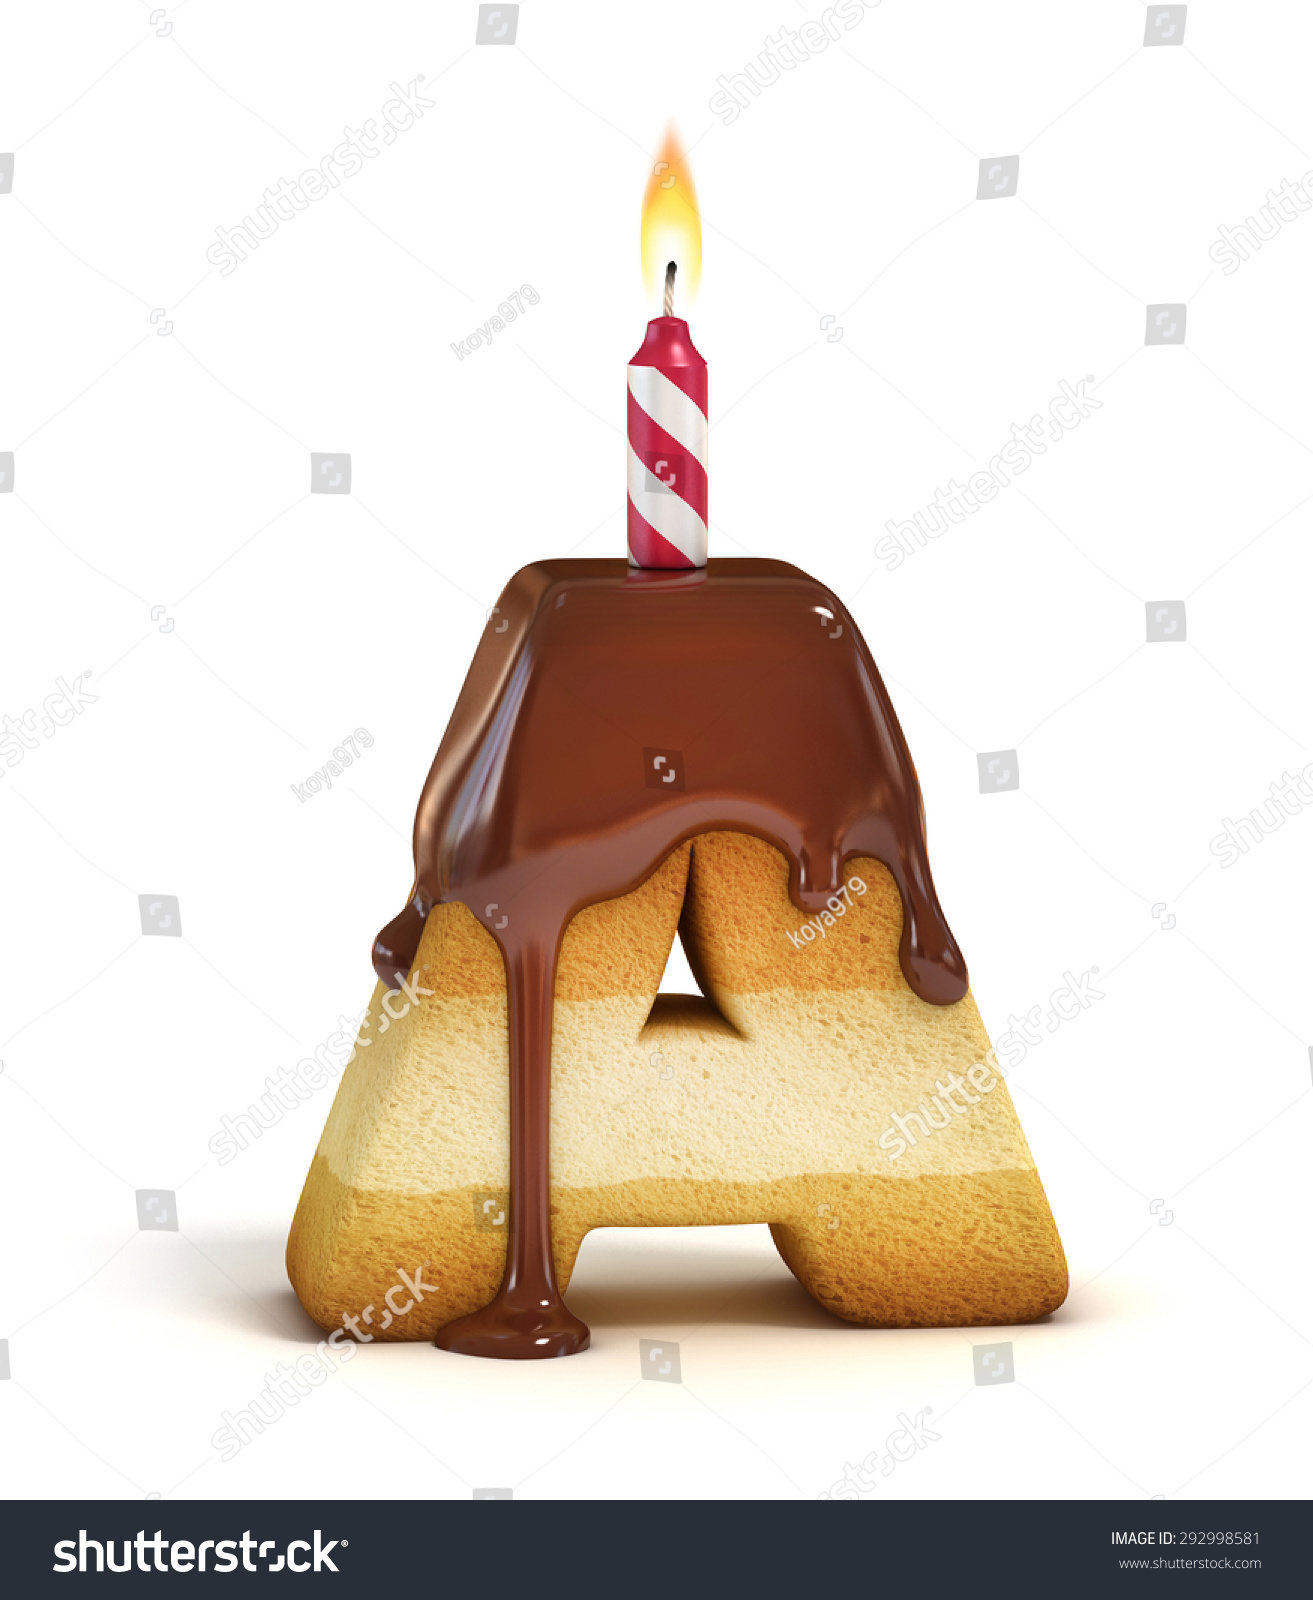 Cake Images With Letter S : Birthday Cake Font Letter A Stock Photo 292998581 ...